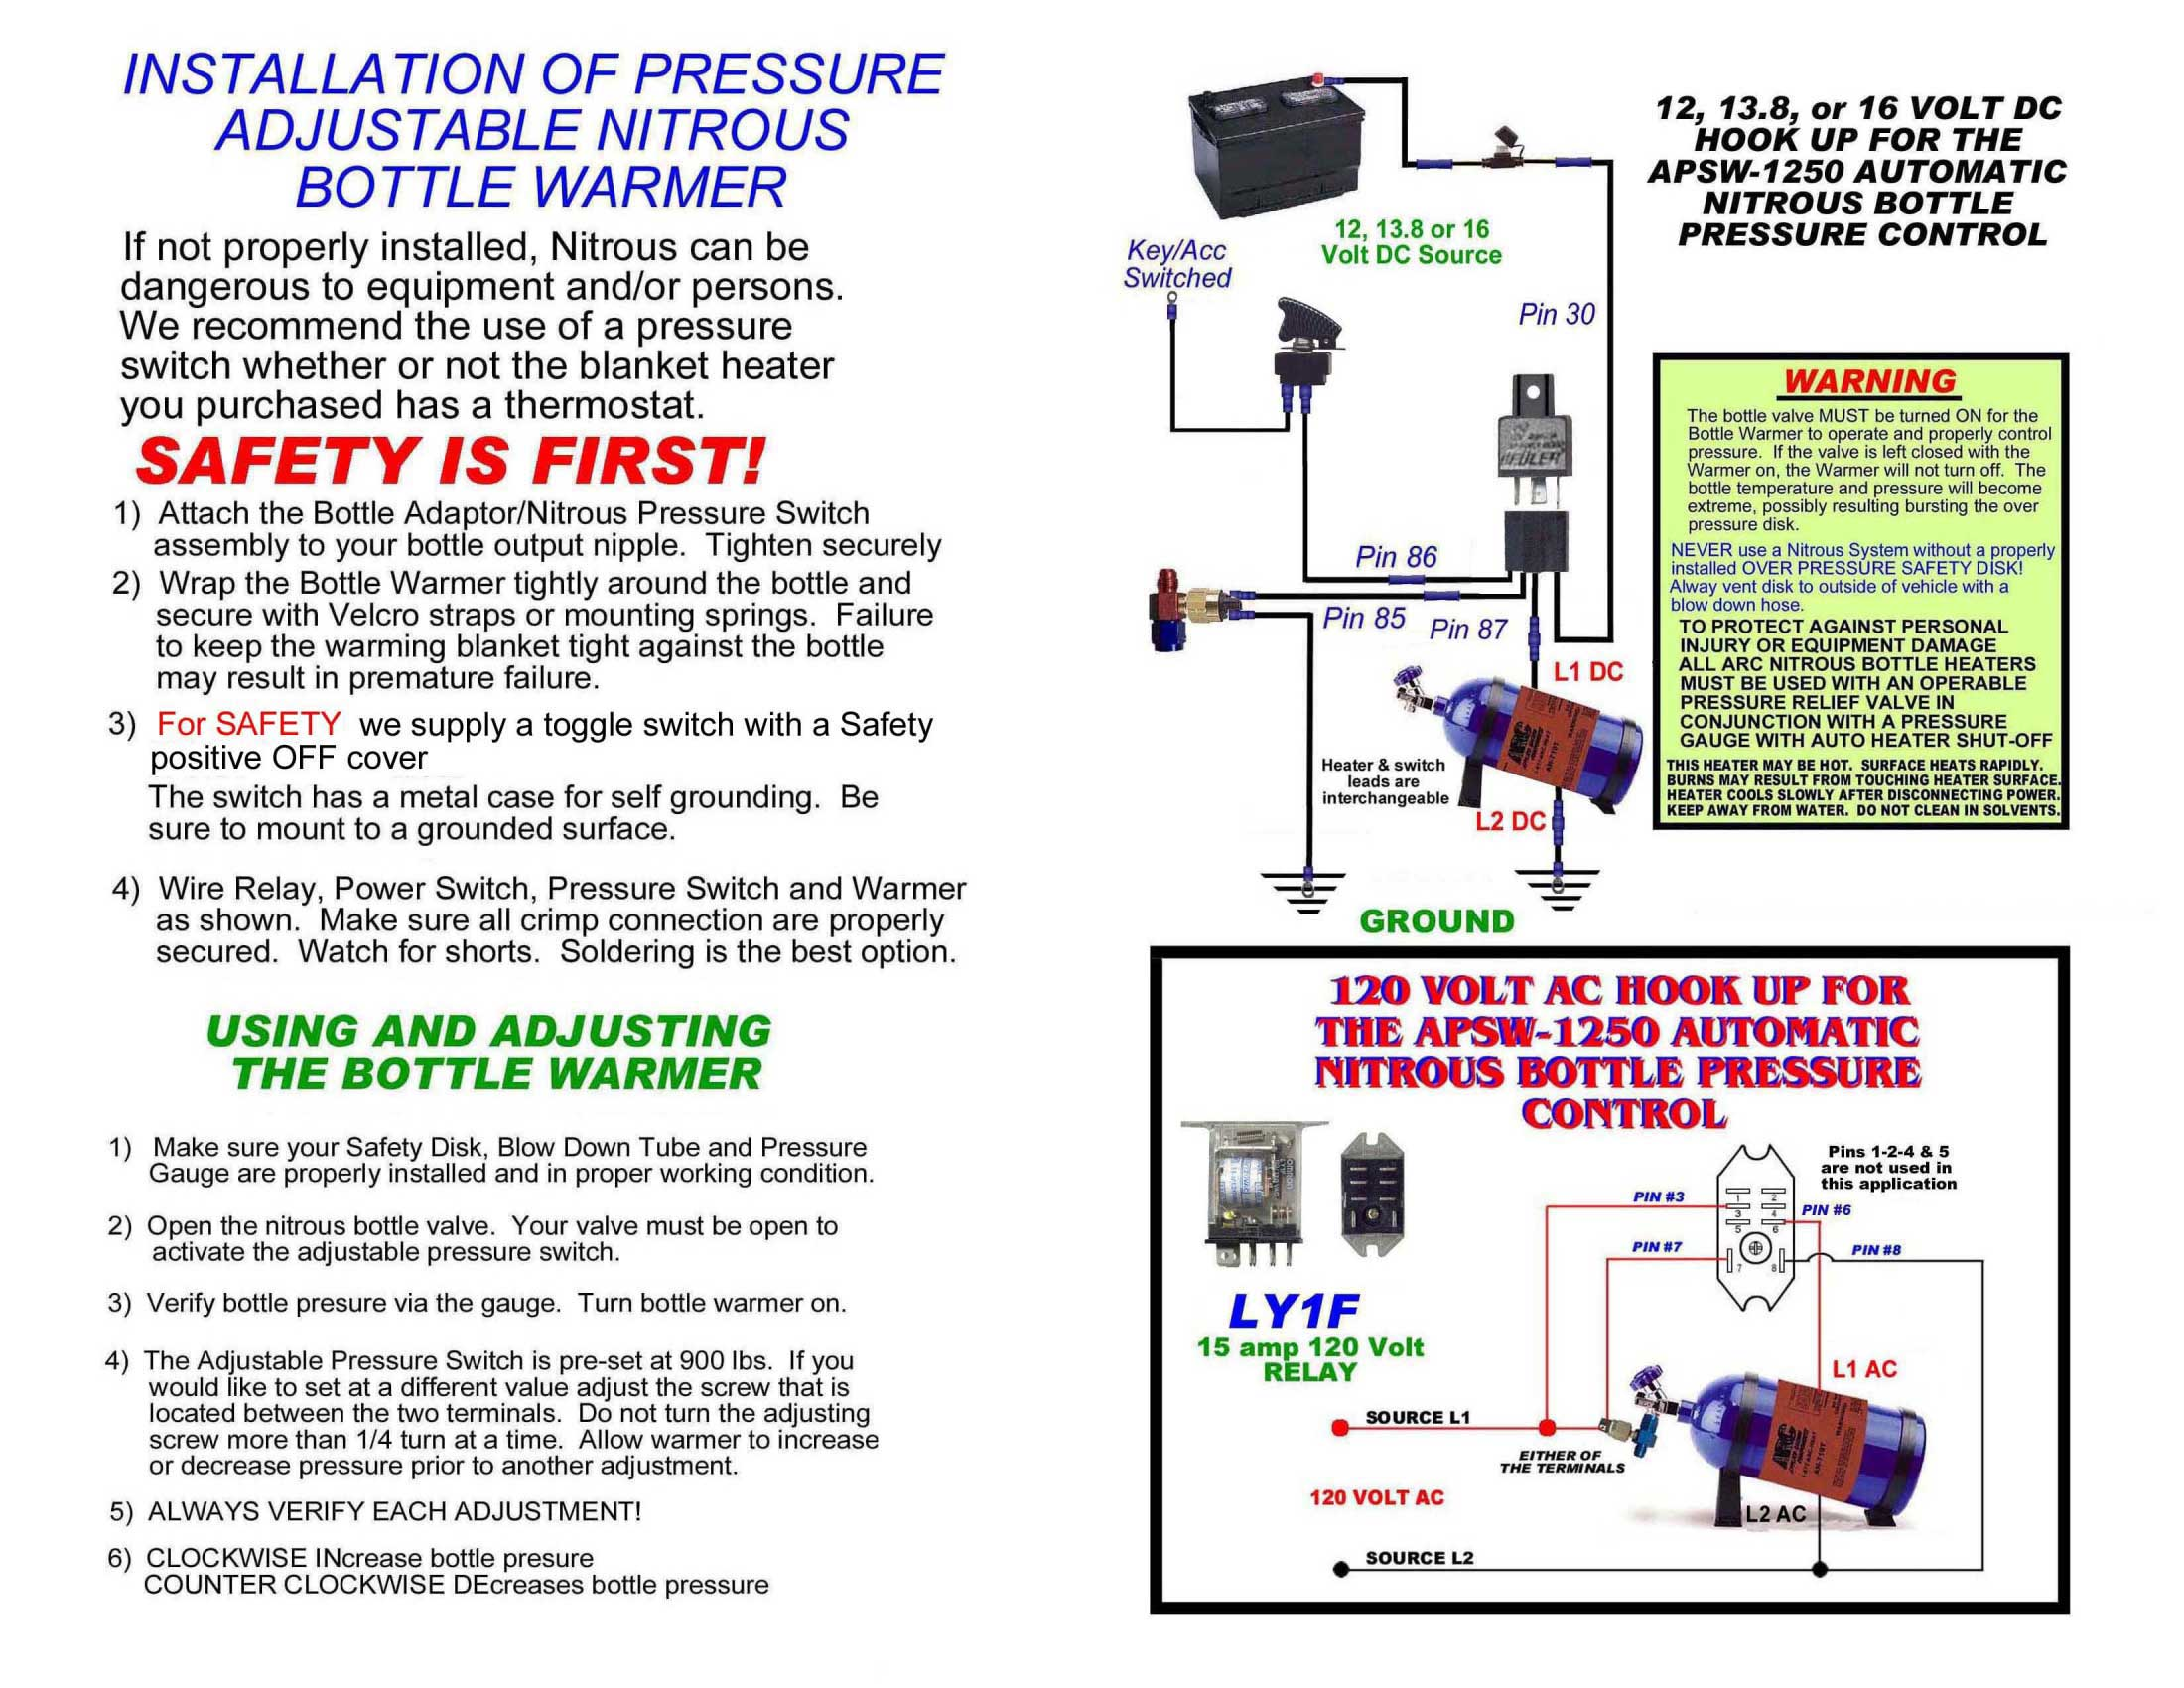 Mps Racing Instructions Car Ignition Coil Wiring Diagram Blaster Click For Larger Image